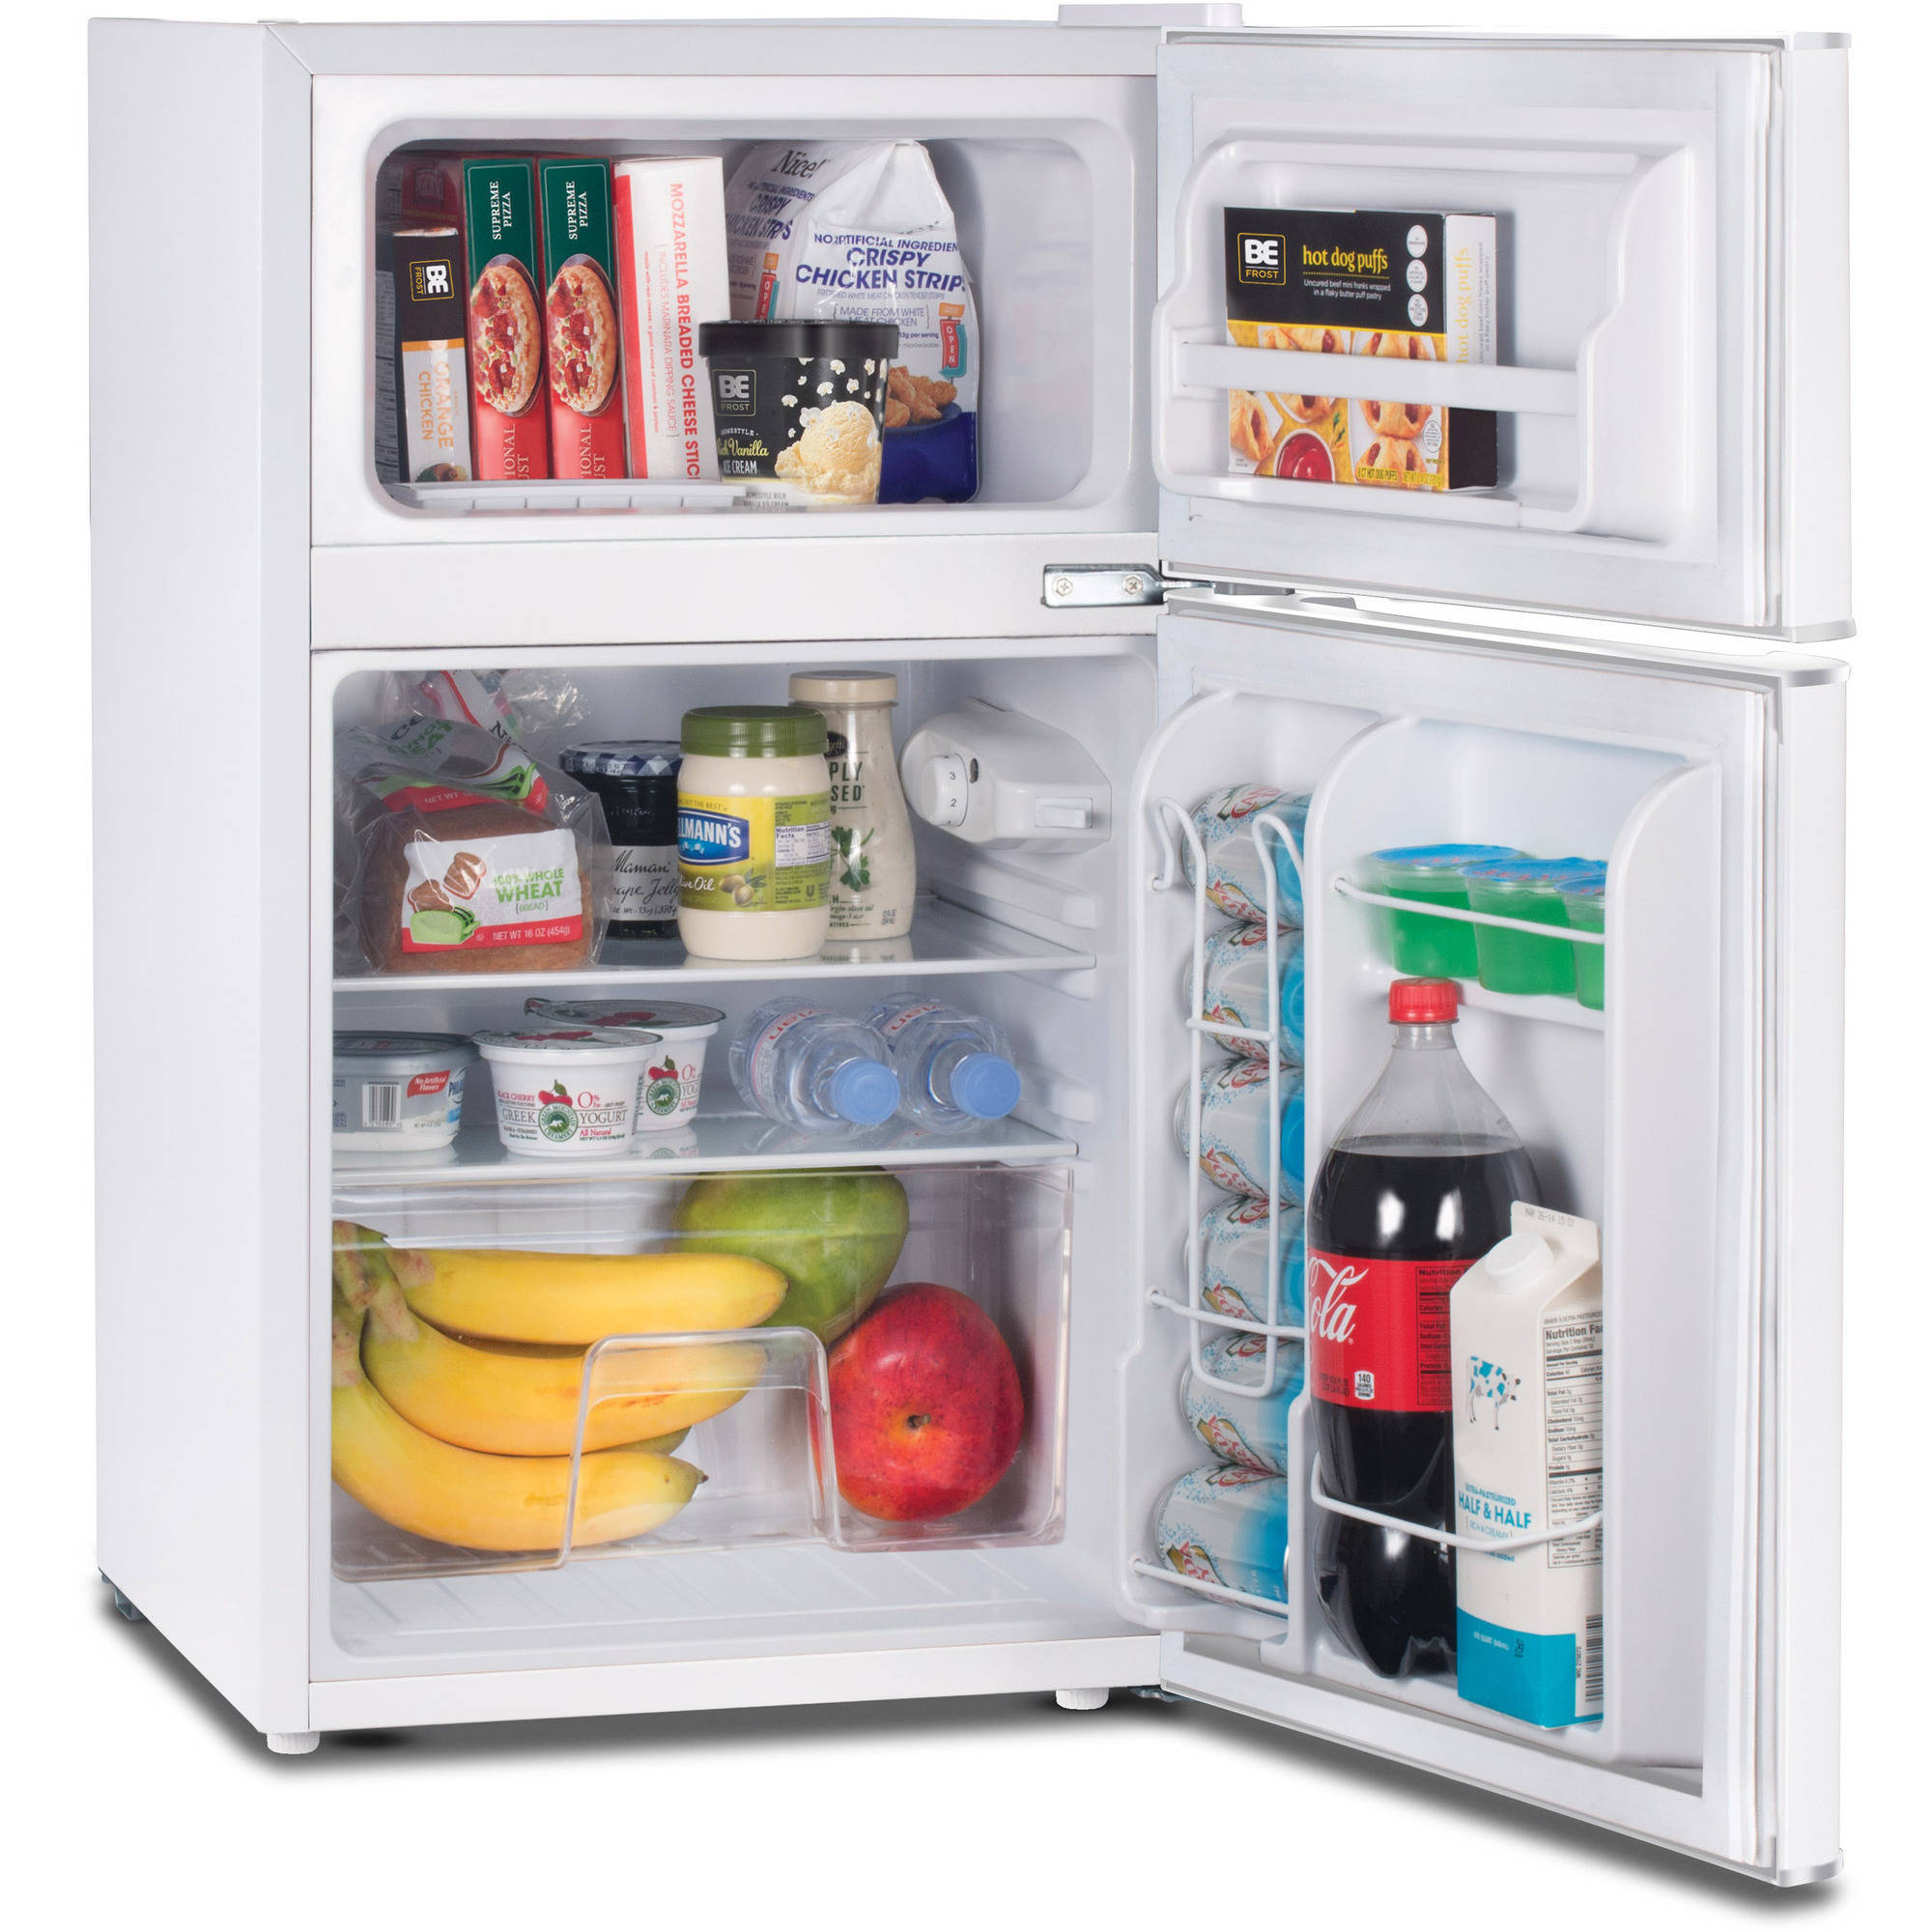 Westinghouse Commercial Cool 3.2 Cu Ft 2 Door Refrigerator With Freezer,  White   Walmart.com